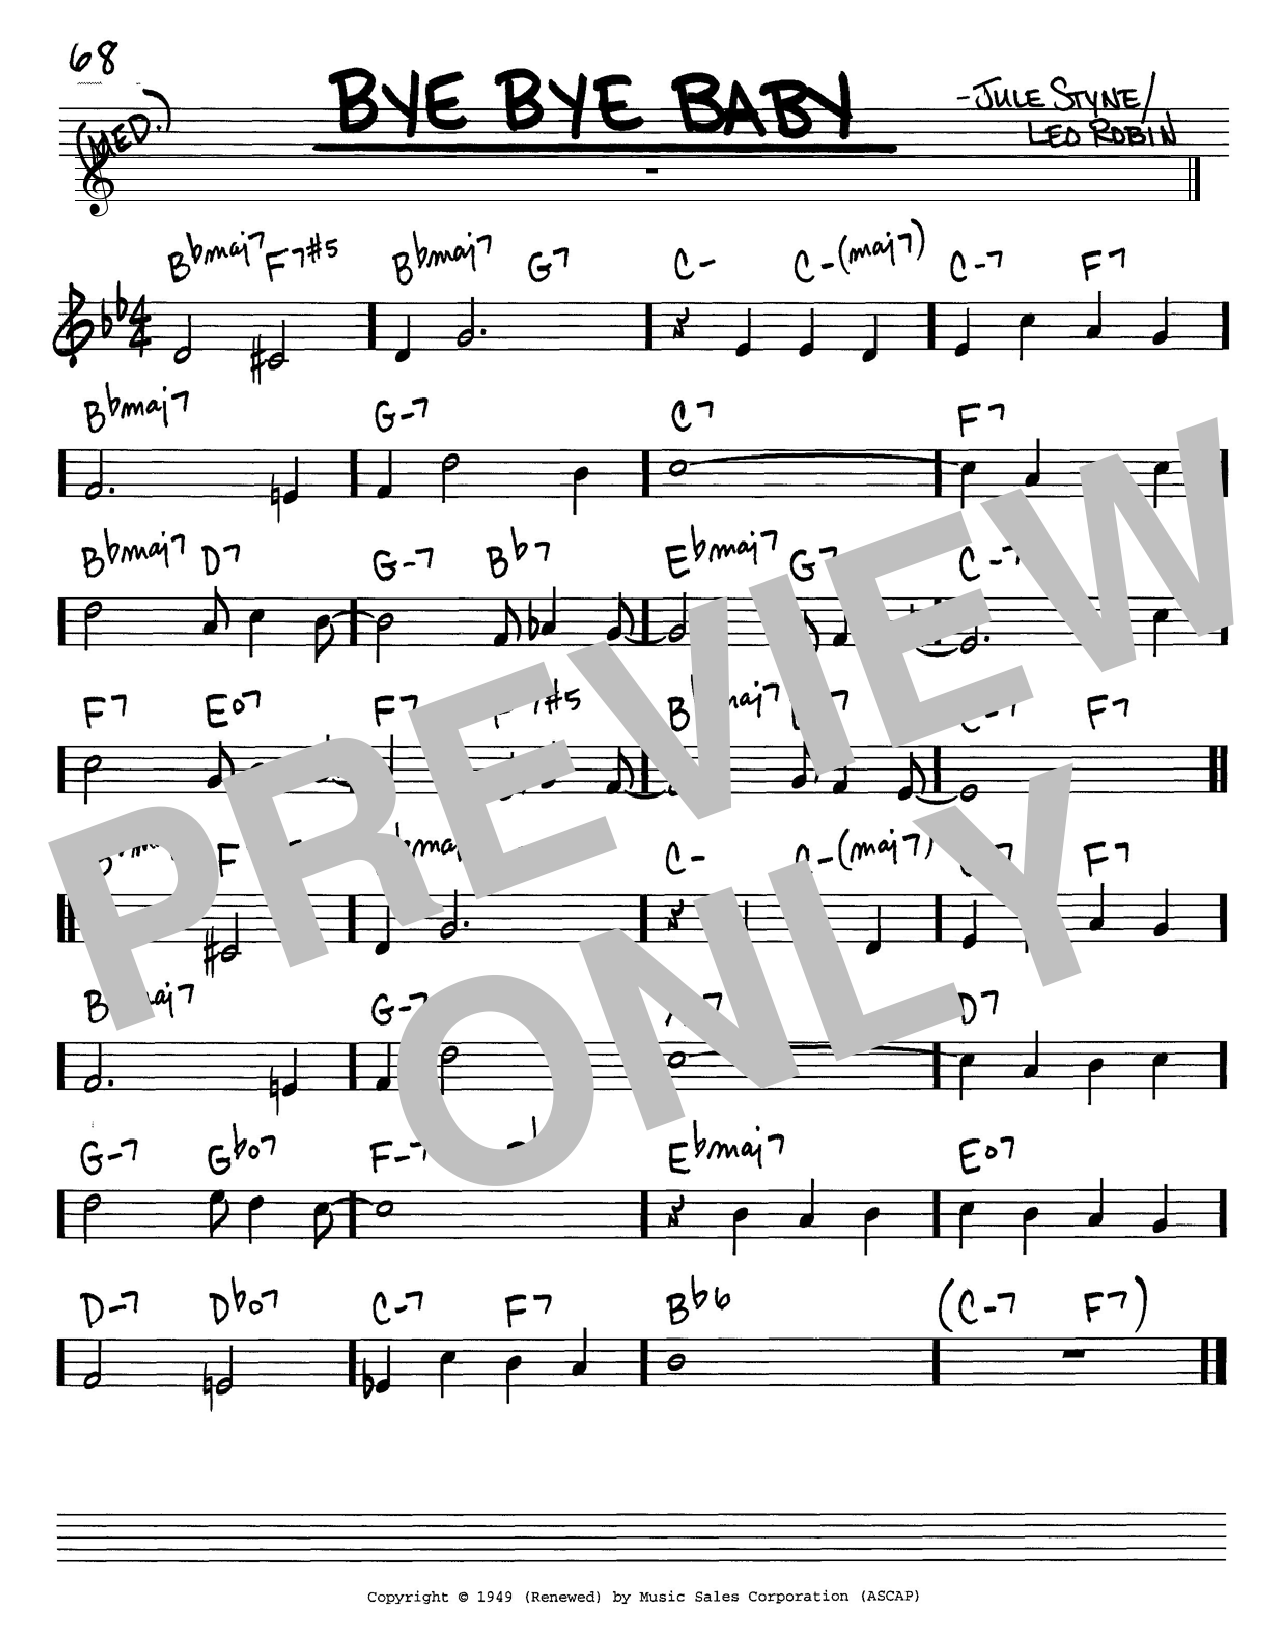 Frank Sinatra Bye Bye Baby sheet music notes and chords. Download Printable PDF.